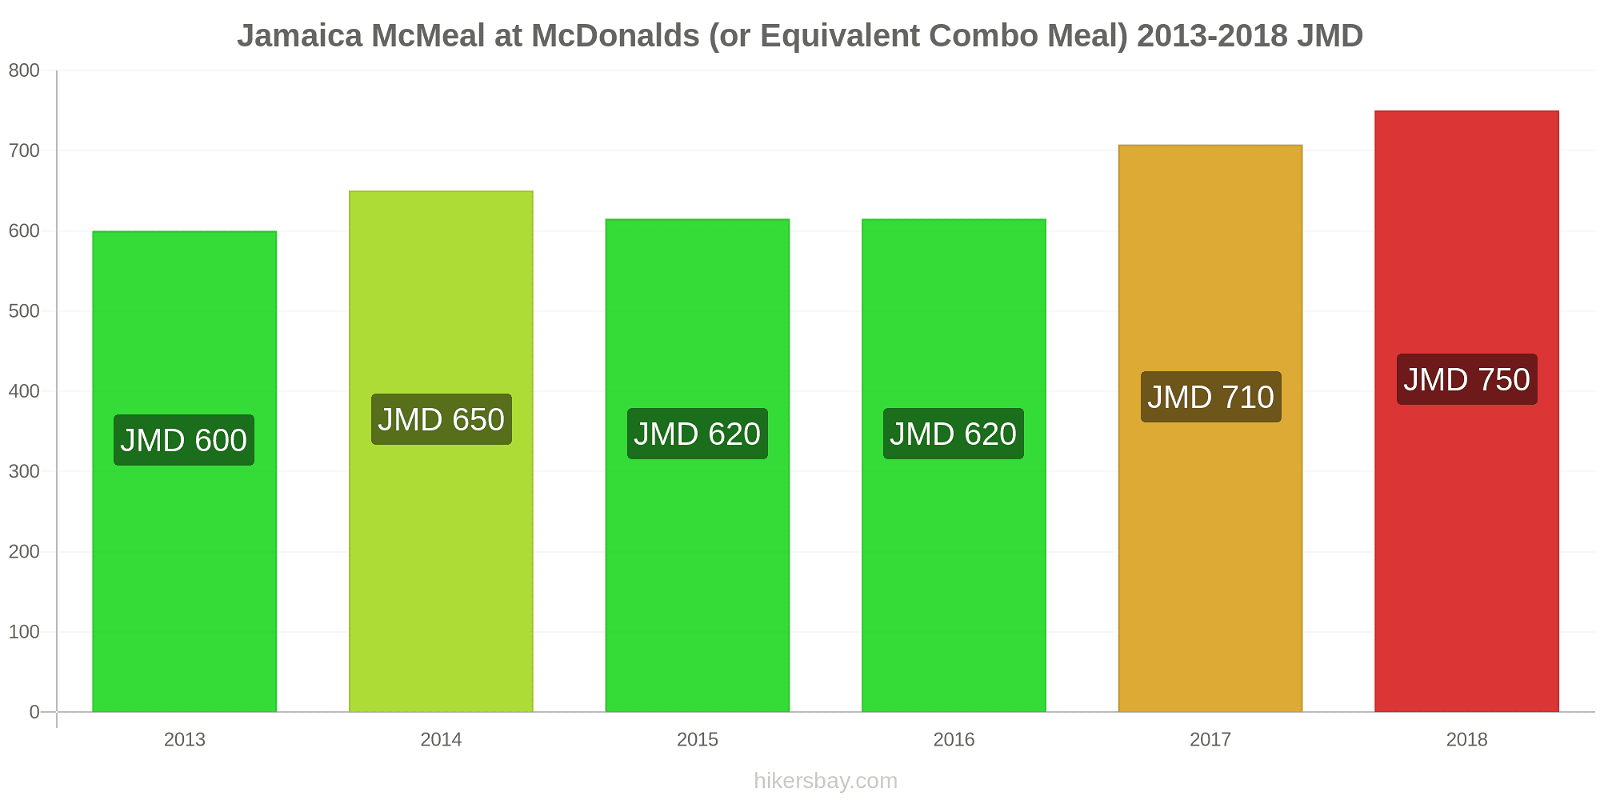 Jamaica price changes McMeal at McDonalds (or Equivalent Combo Meal) hikersbay.com